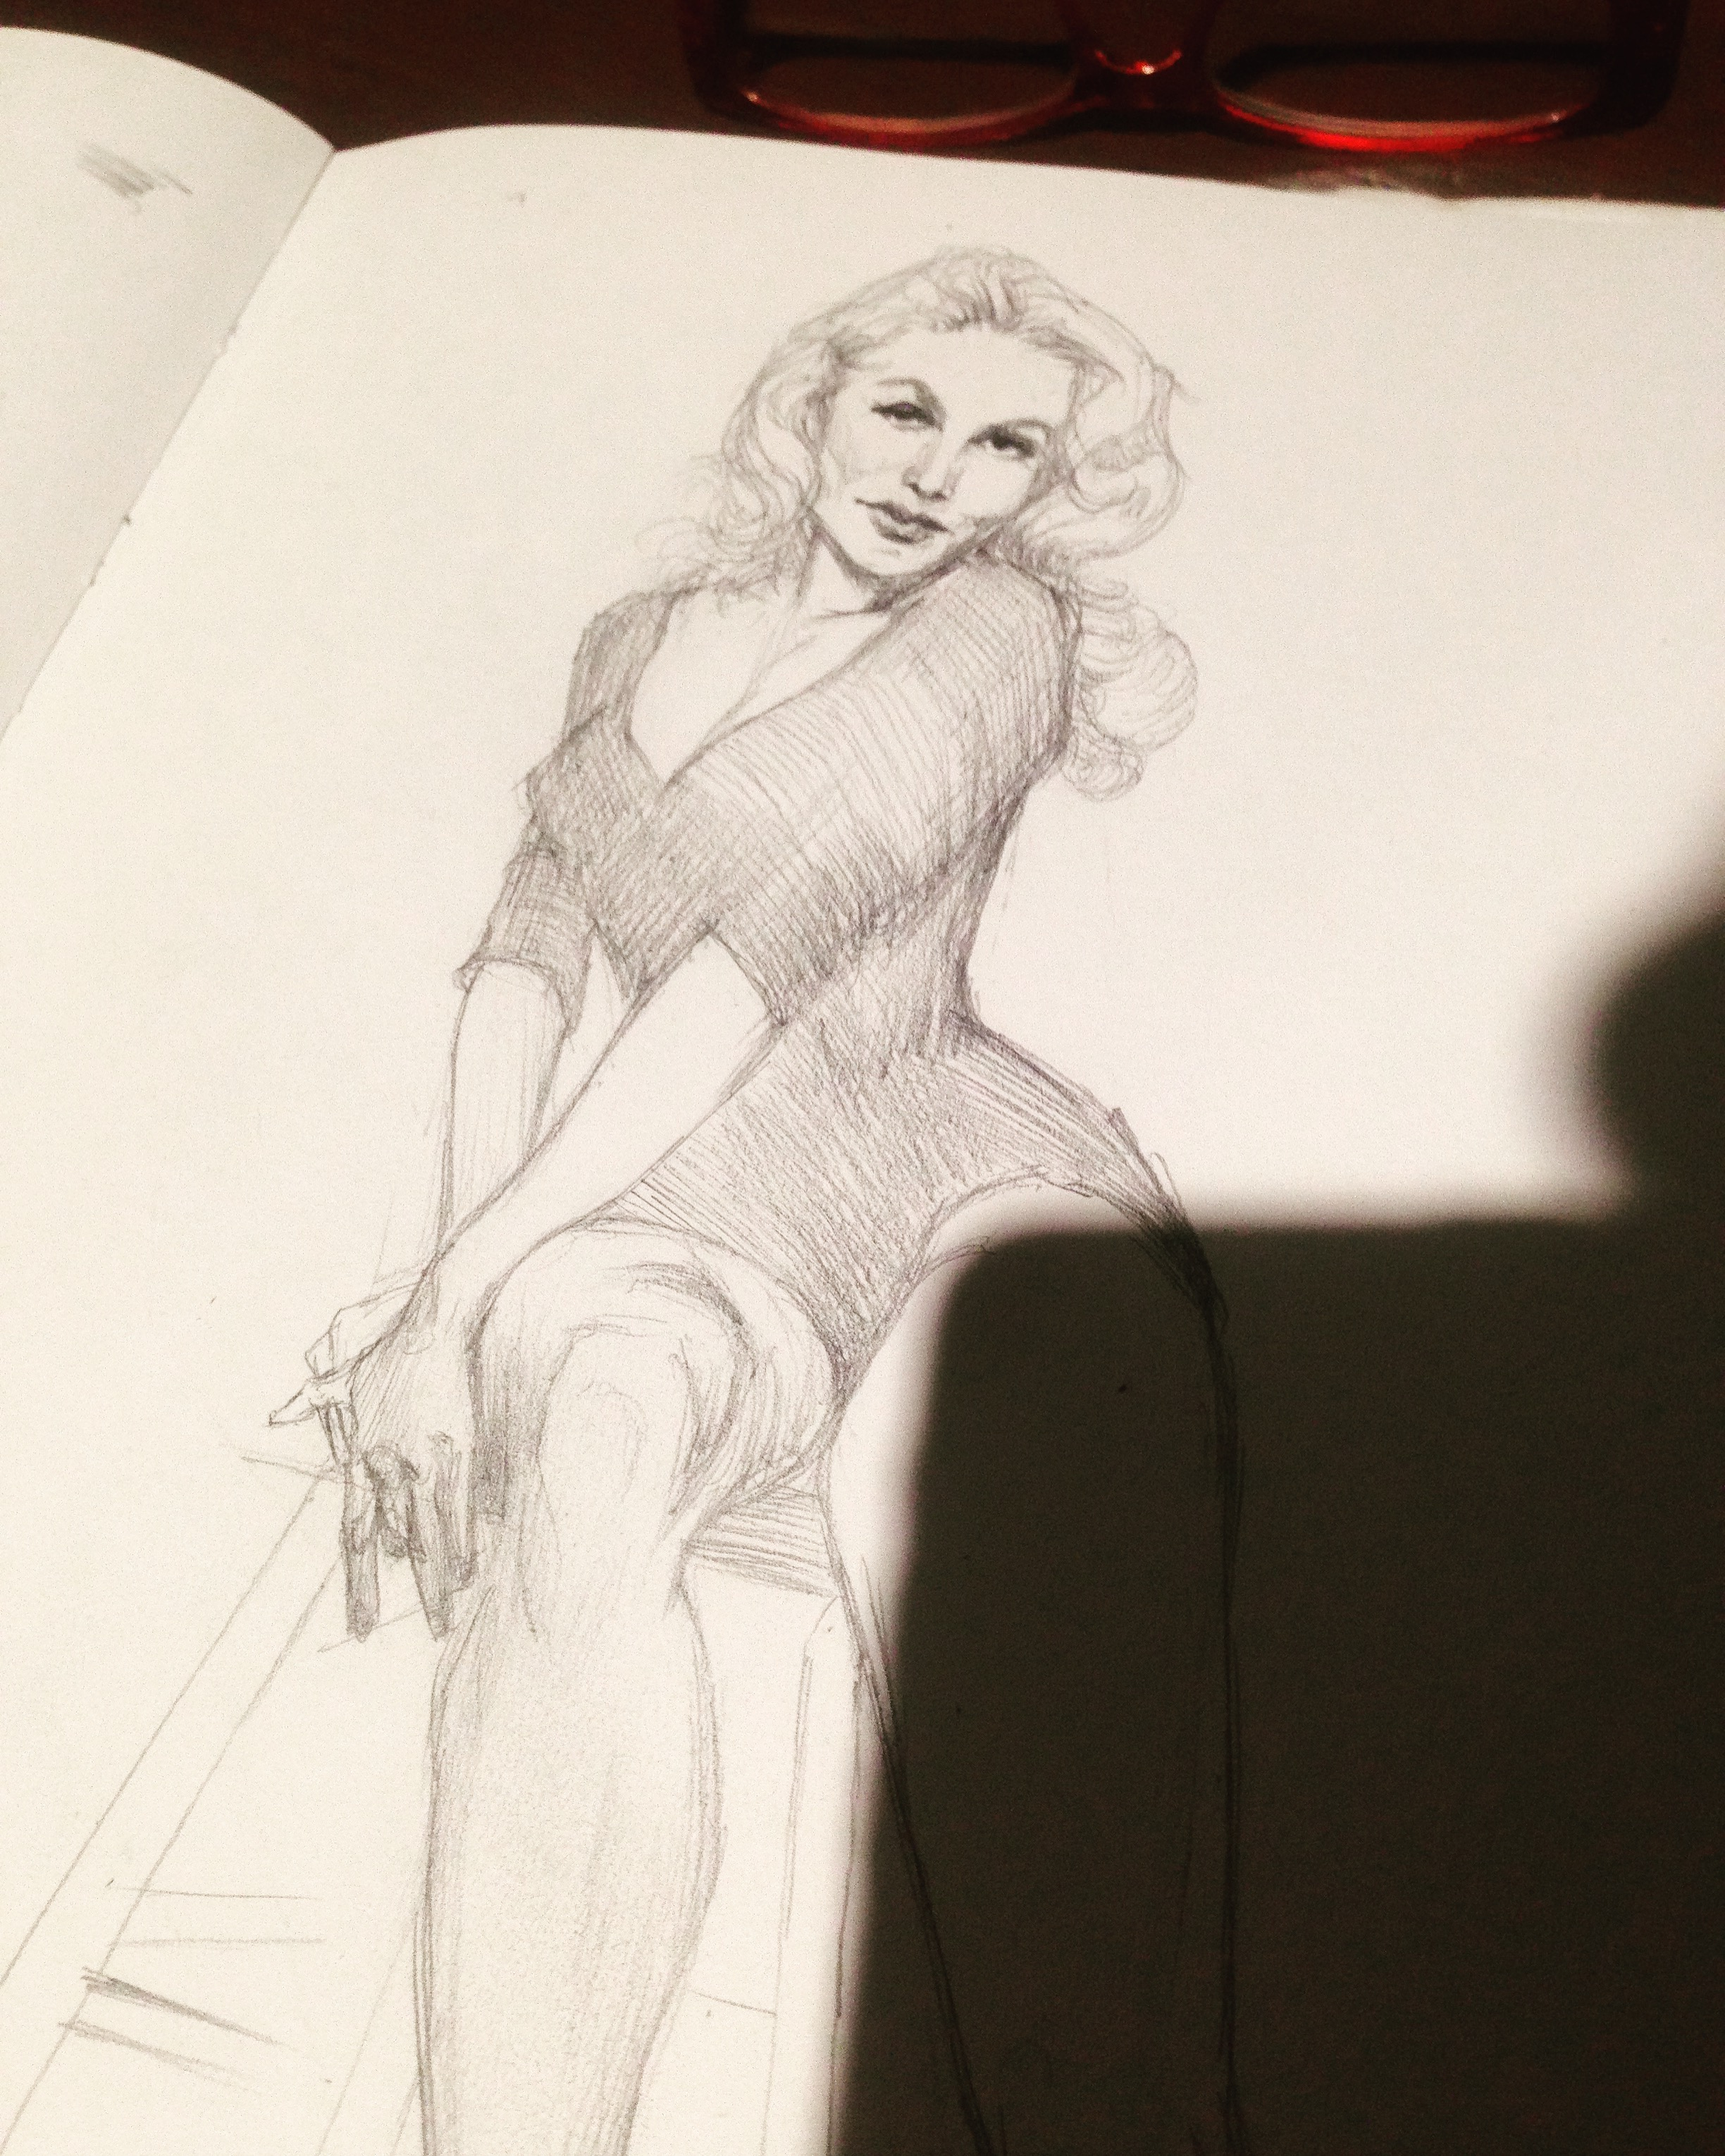 Julie Newmar pencil sketch